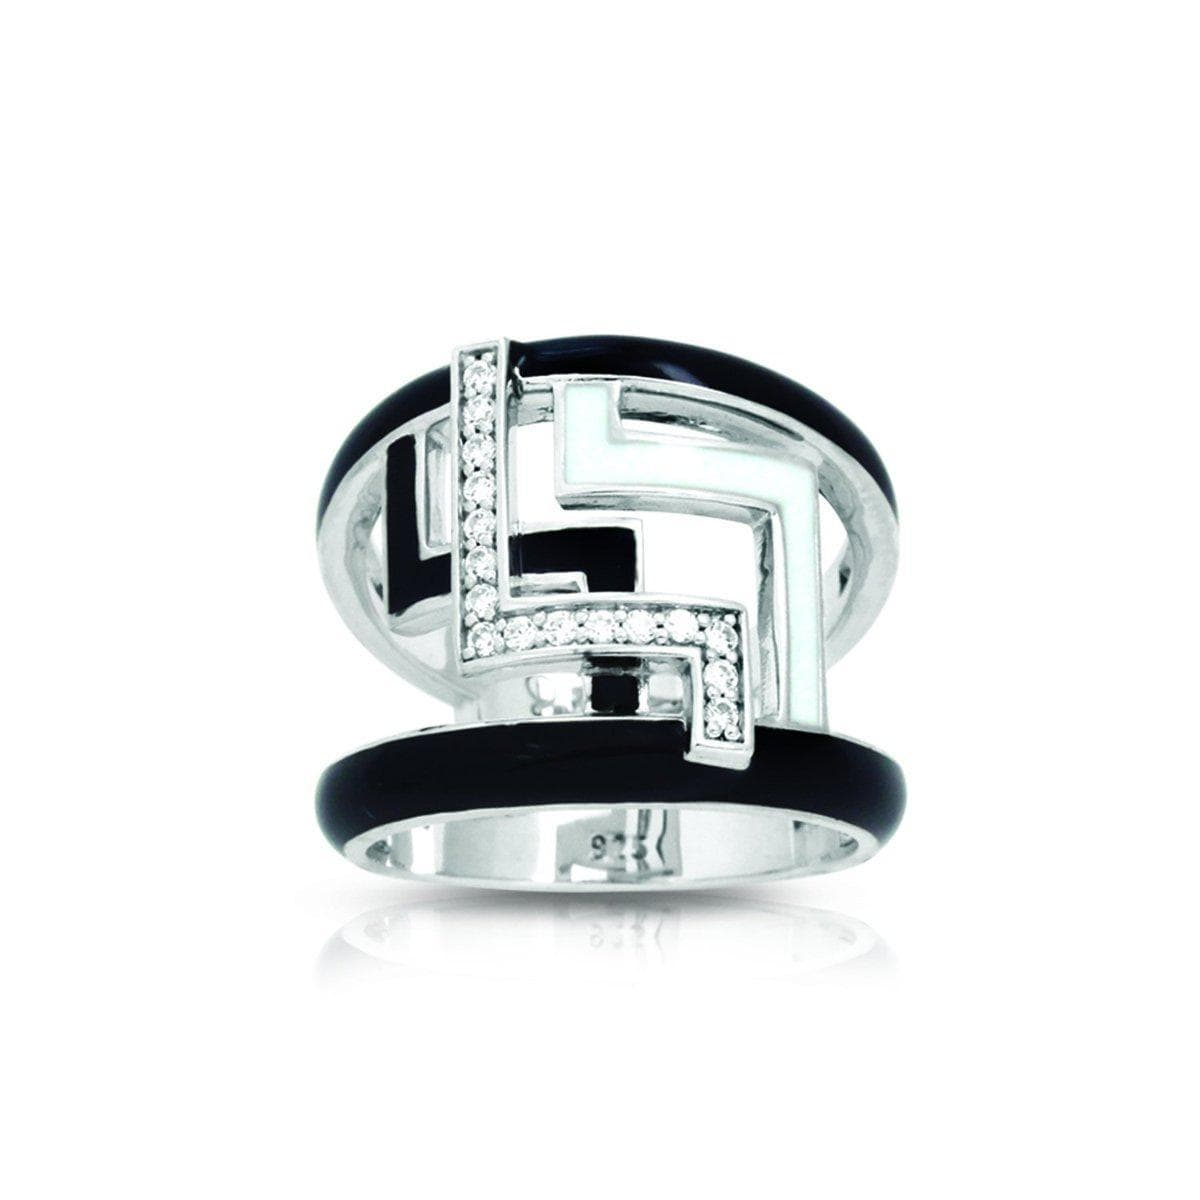 Convergence Black and White Ring-Belle Etoile-Renee Taylor Gallery